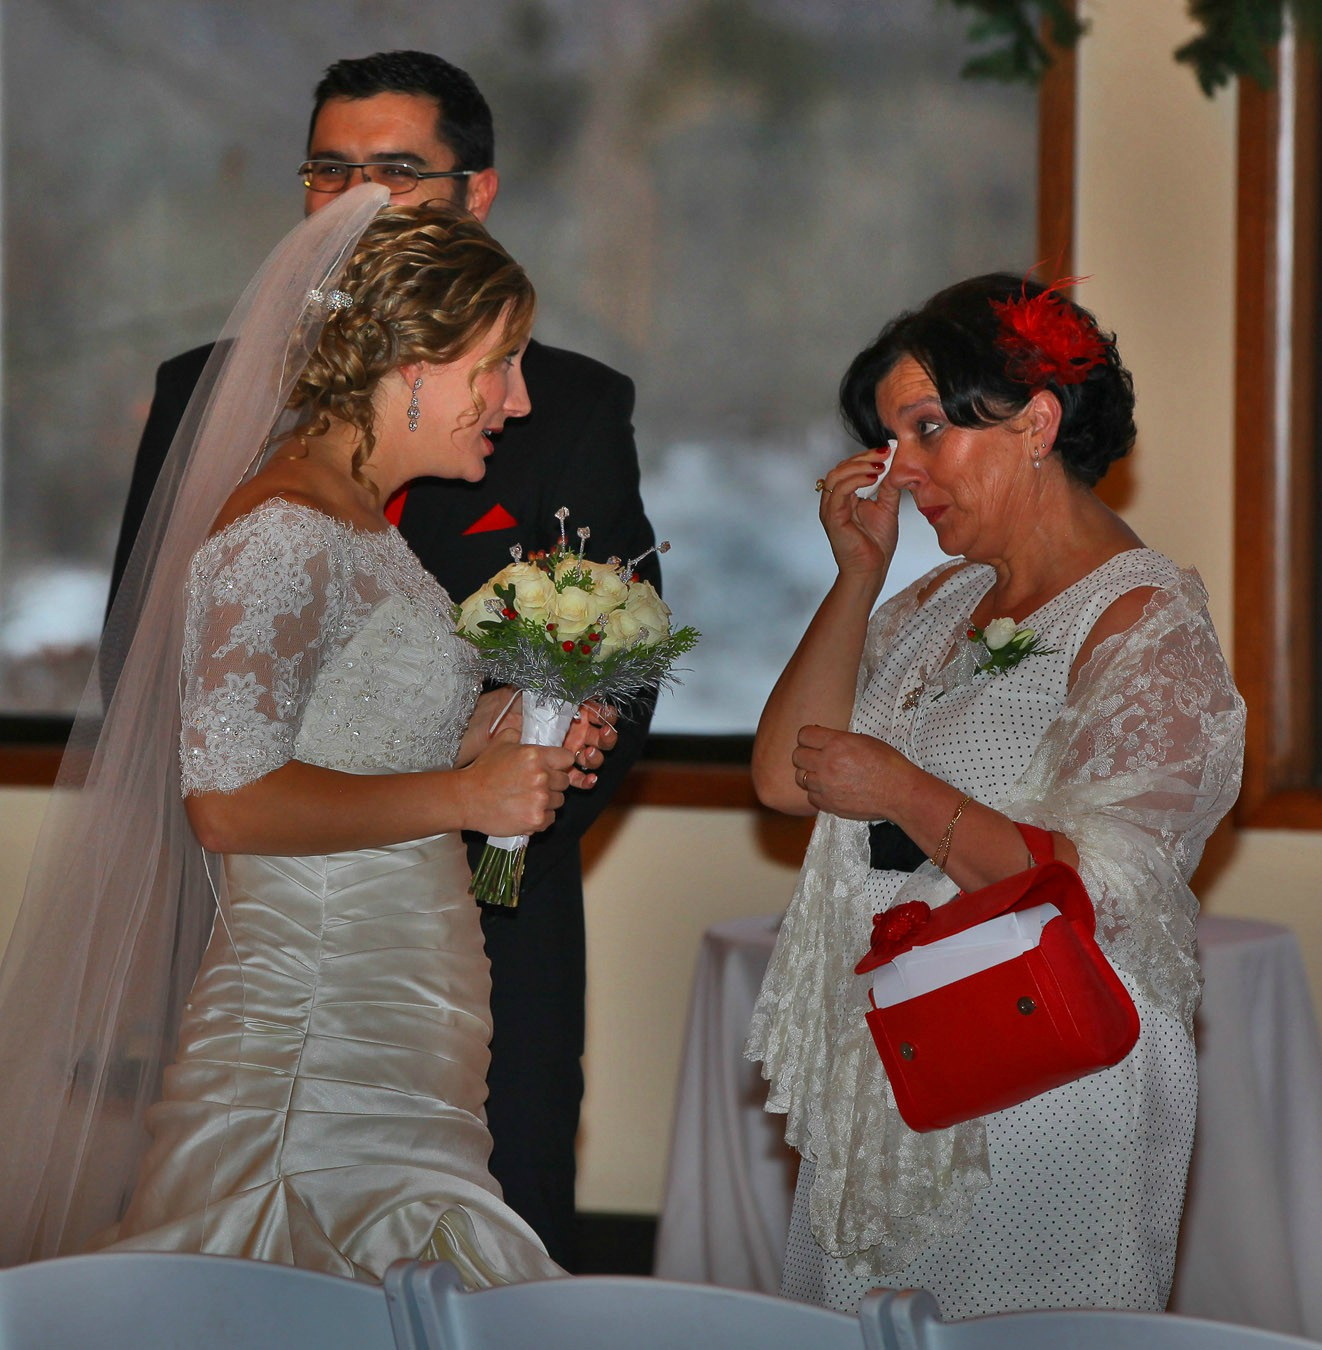 consoling the mother of groom img abw author sava gregory and verena